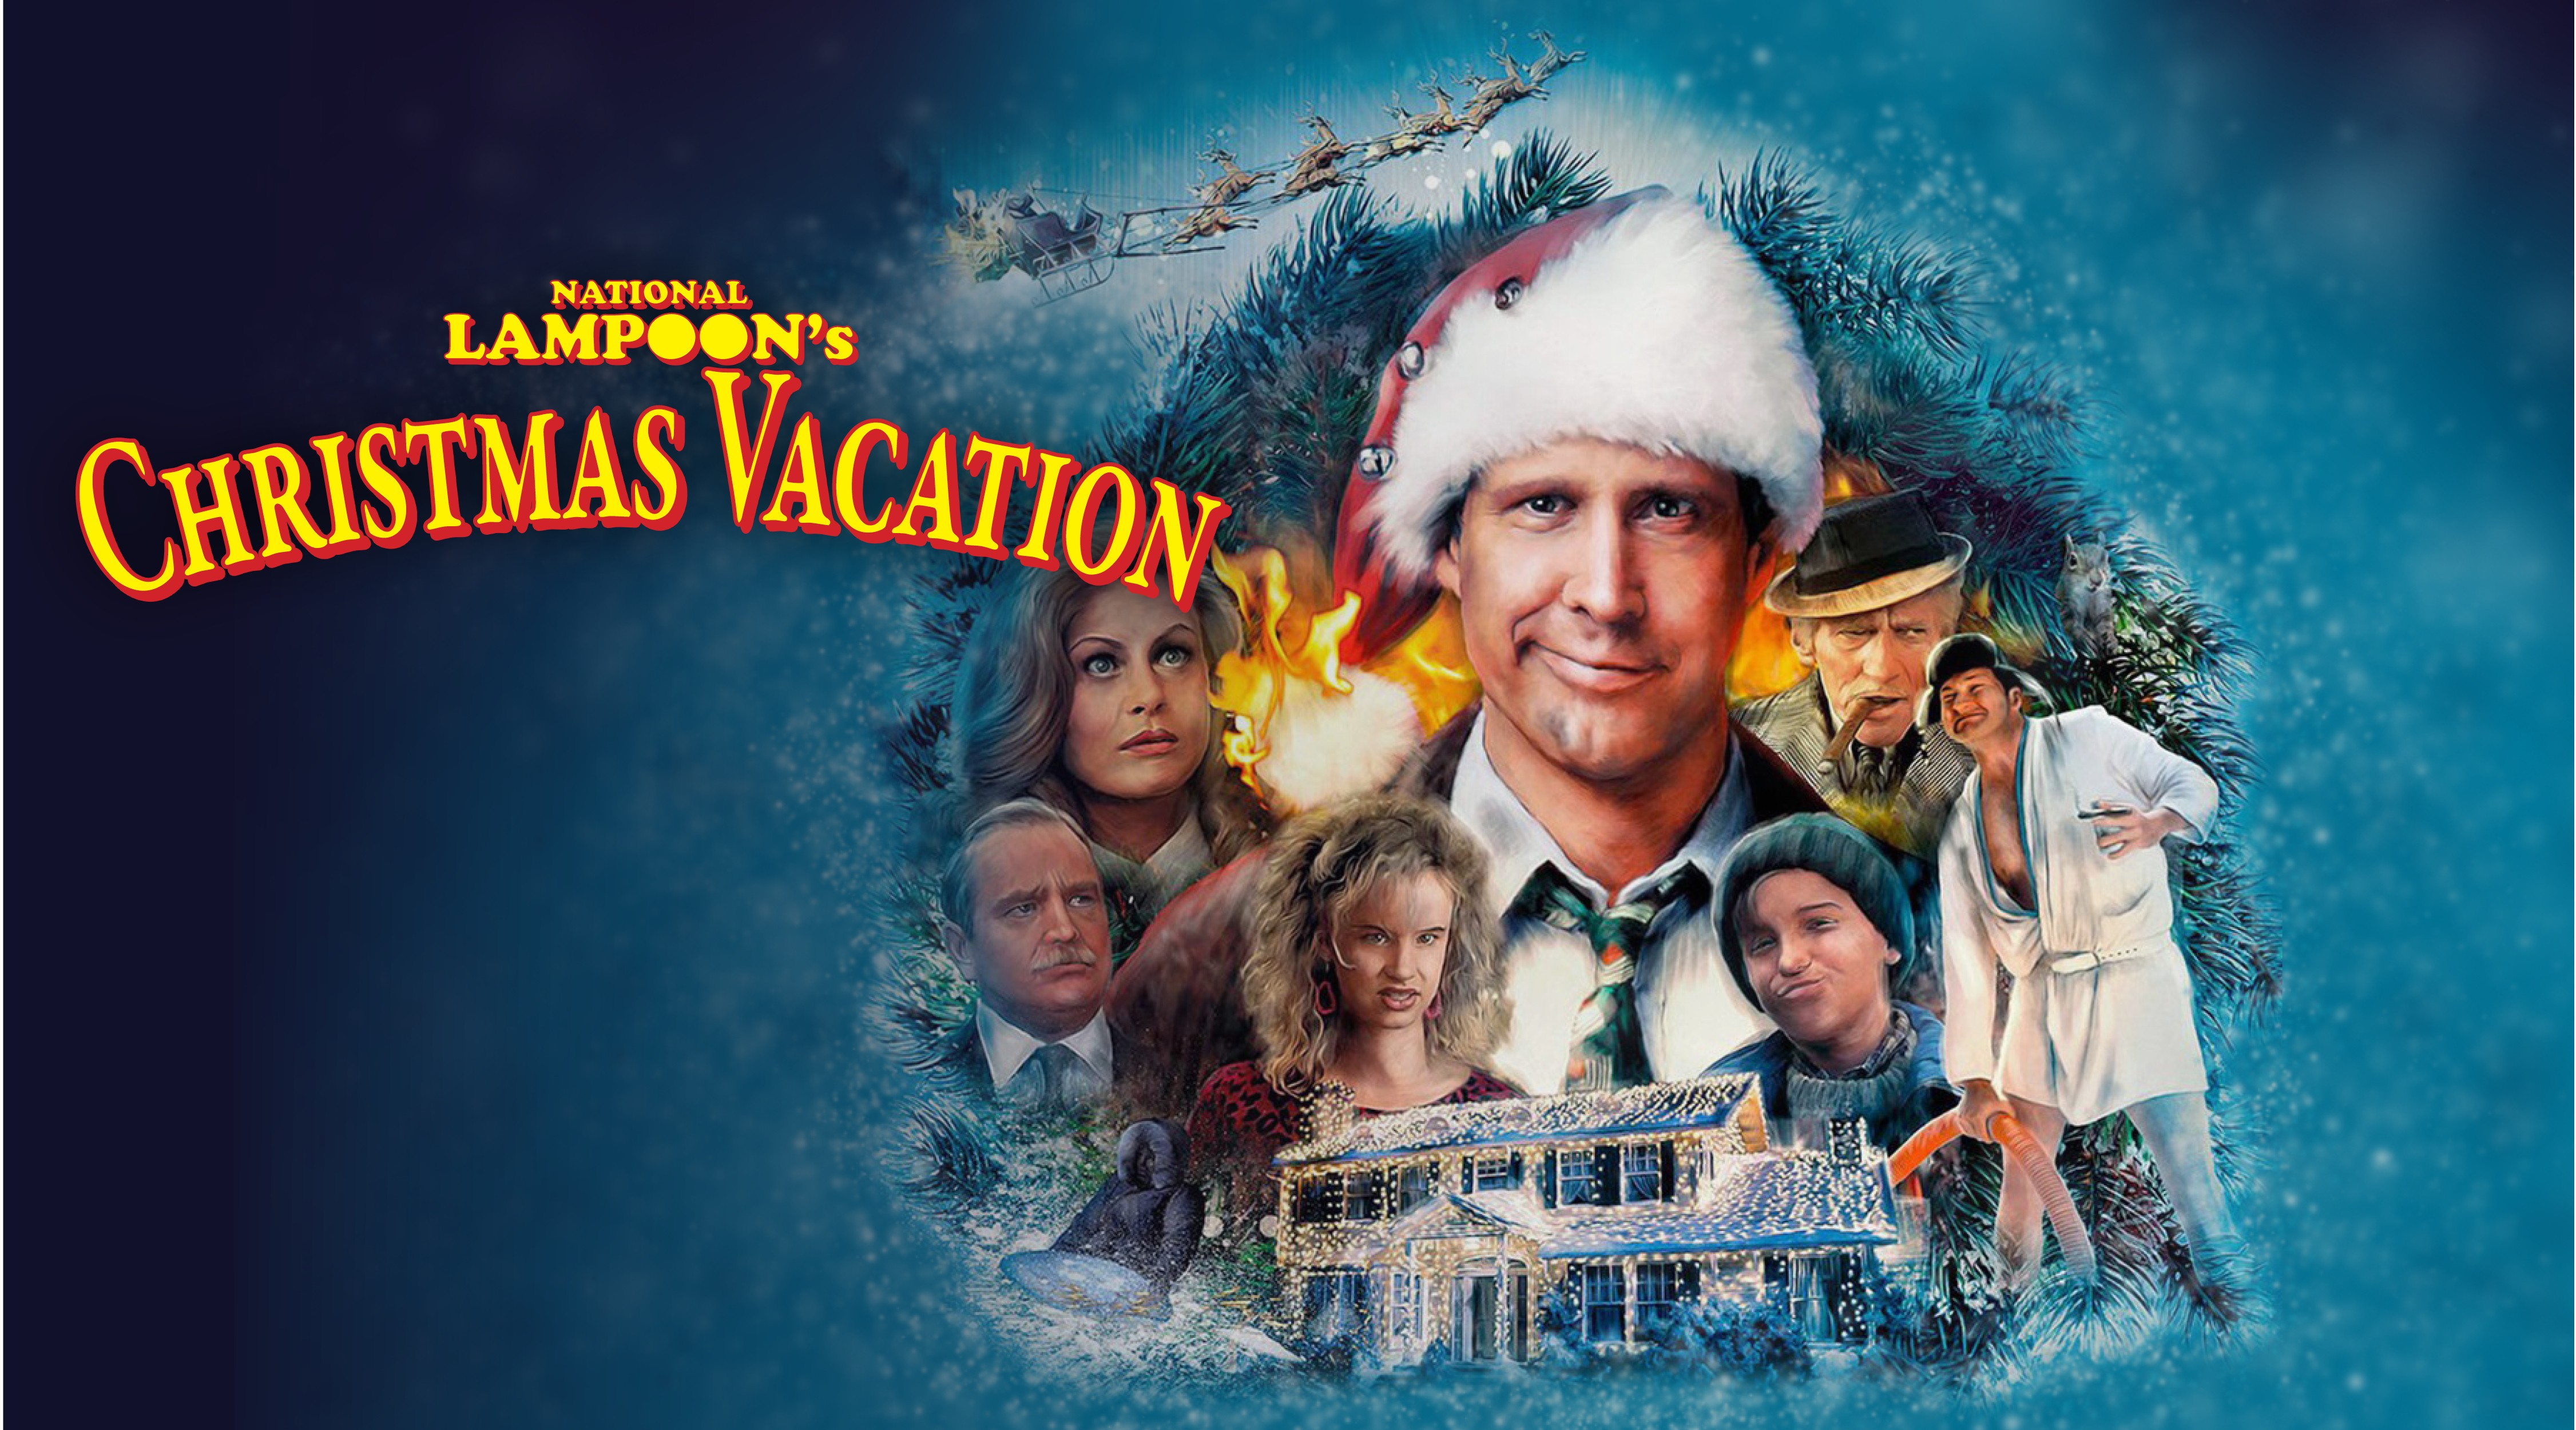 Chevy Chase Christmas Vacation.Suds And Cinema National Lampoon S Christmas Vacation